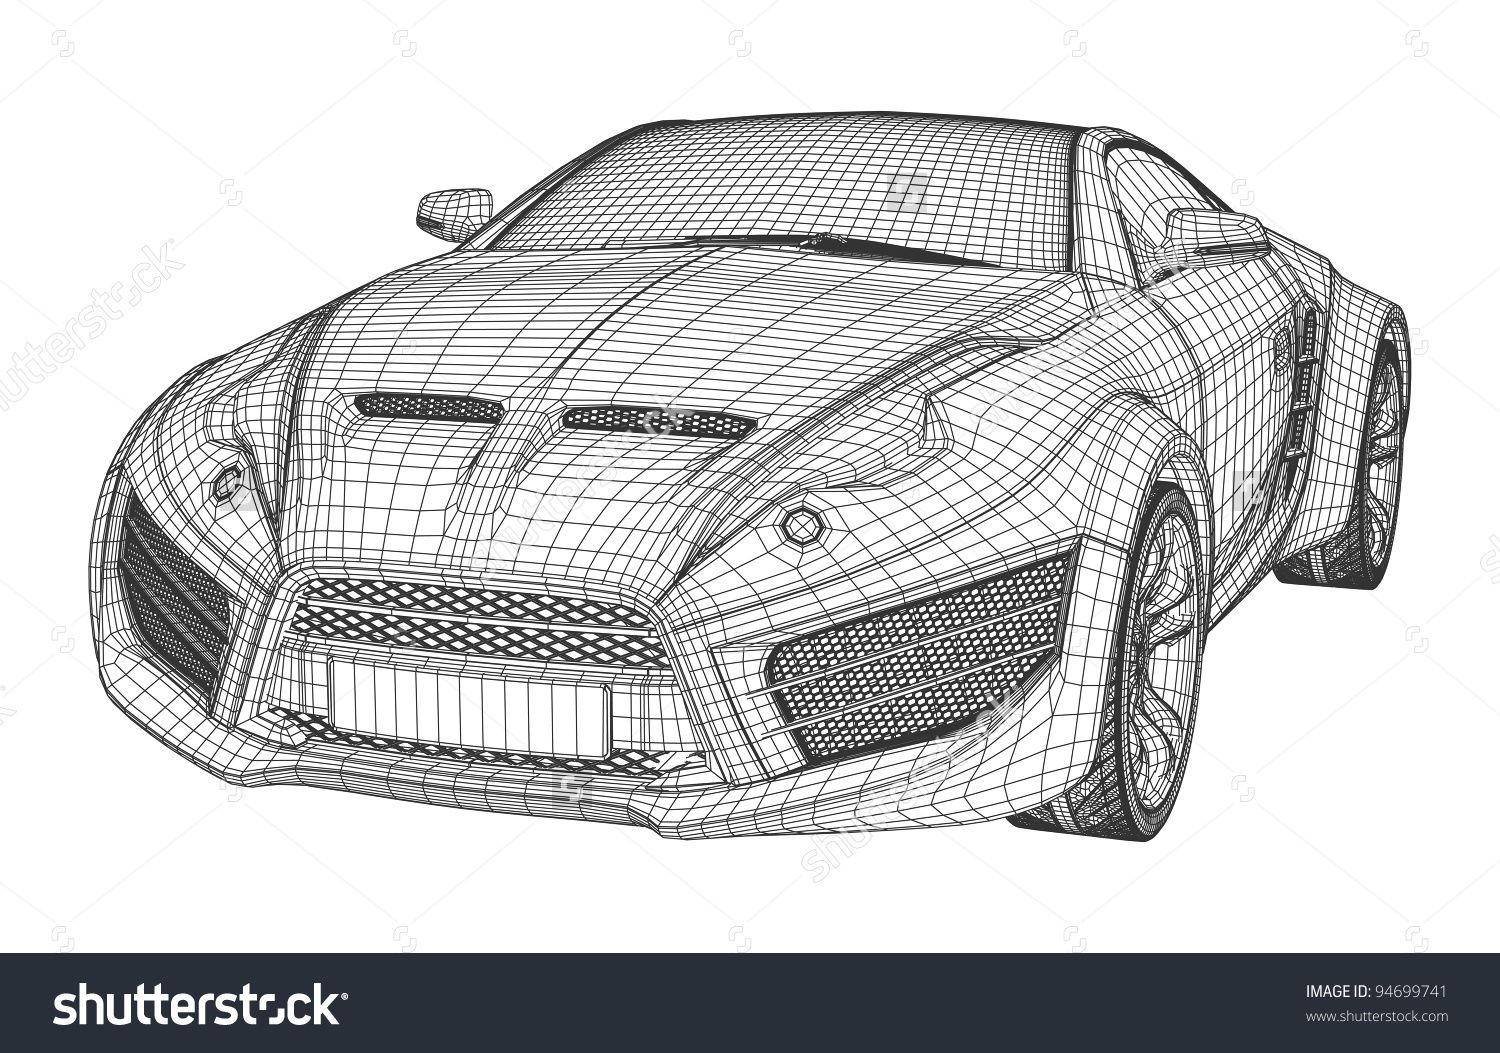 Blueprint Car   Google Search